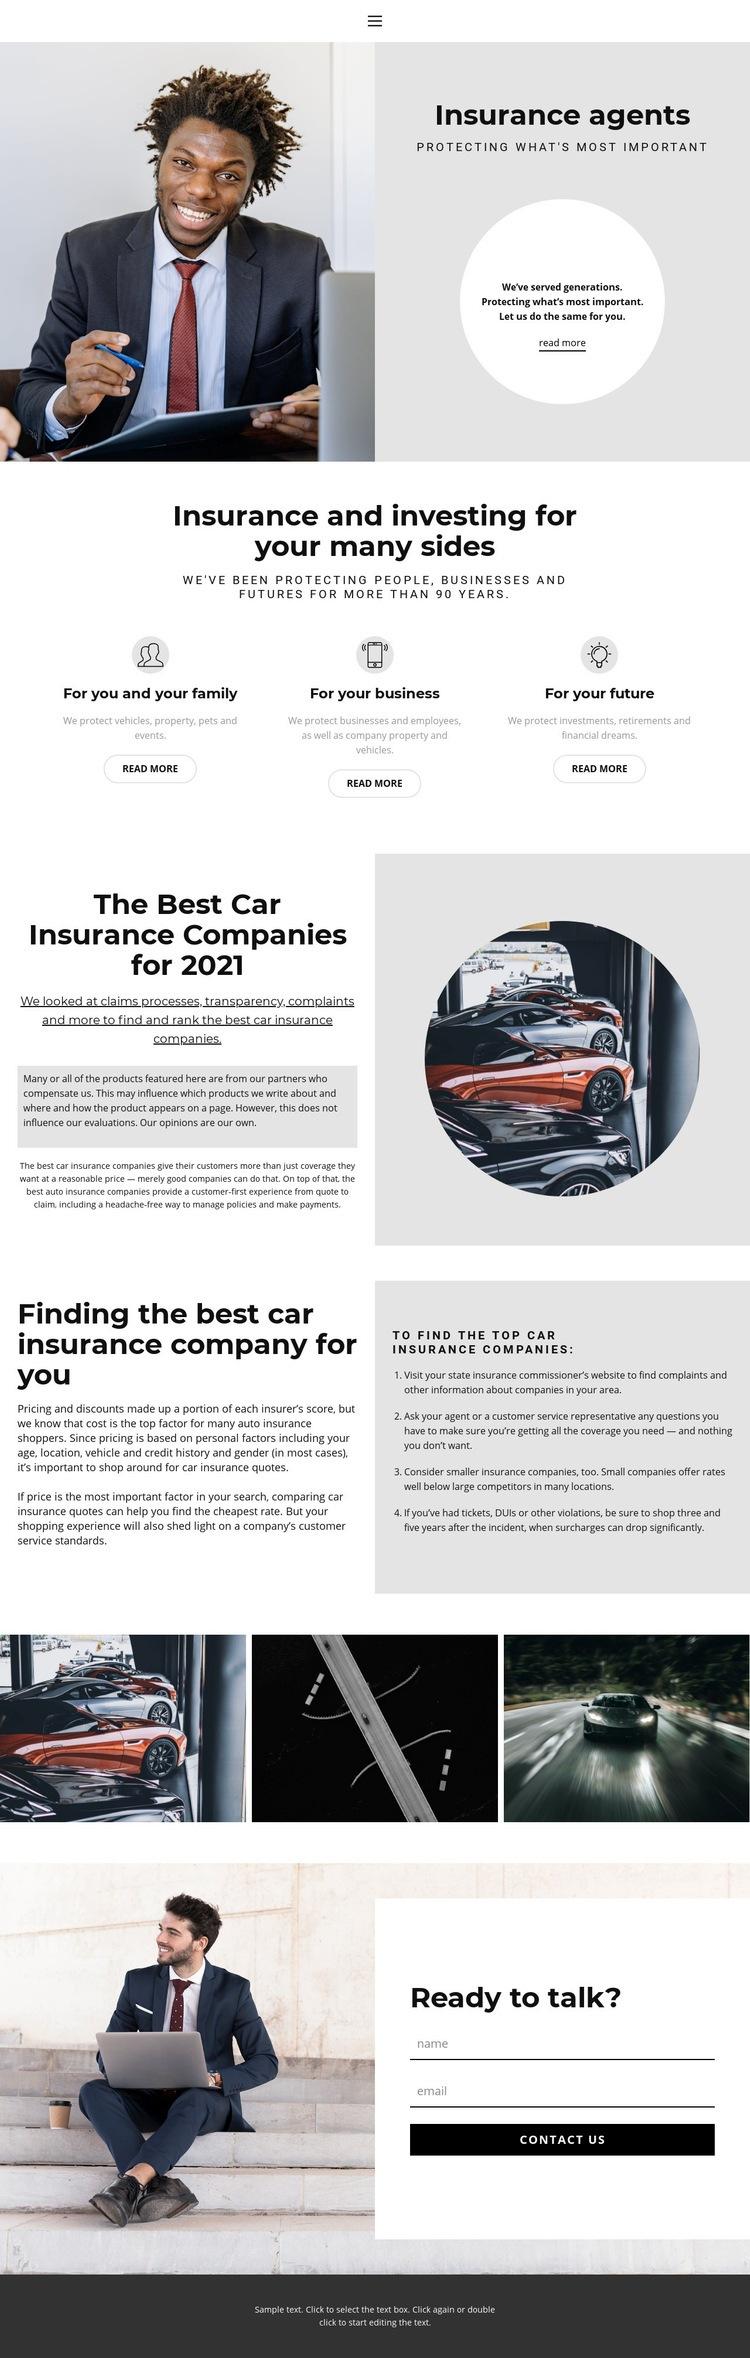 Insurance agents resume Web Page Design